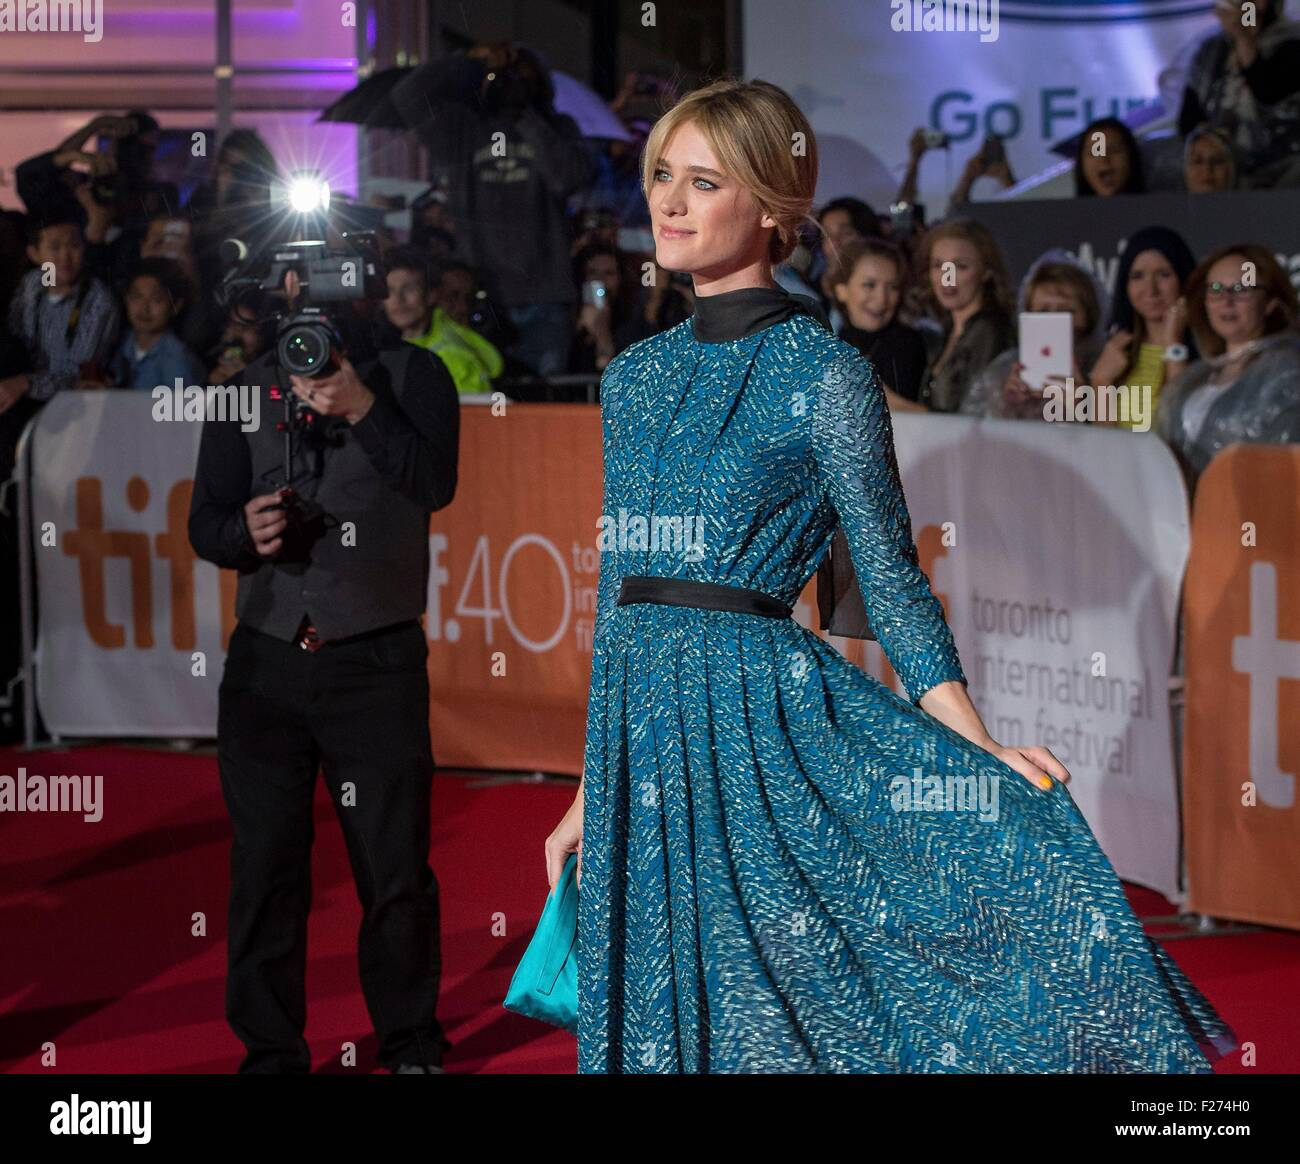 Actress Mackenzie Davis attends the world premiere for The Martian at the Toronto International Film Festival at - Stock Image